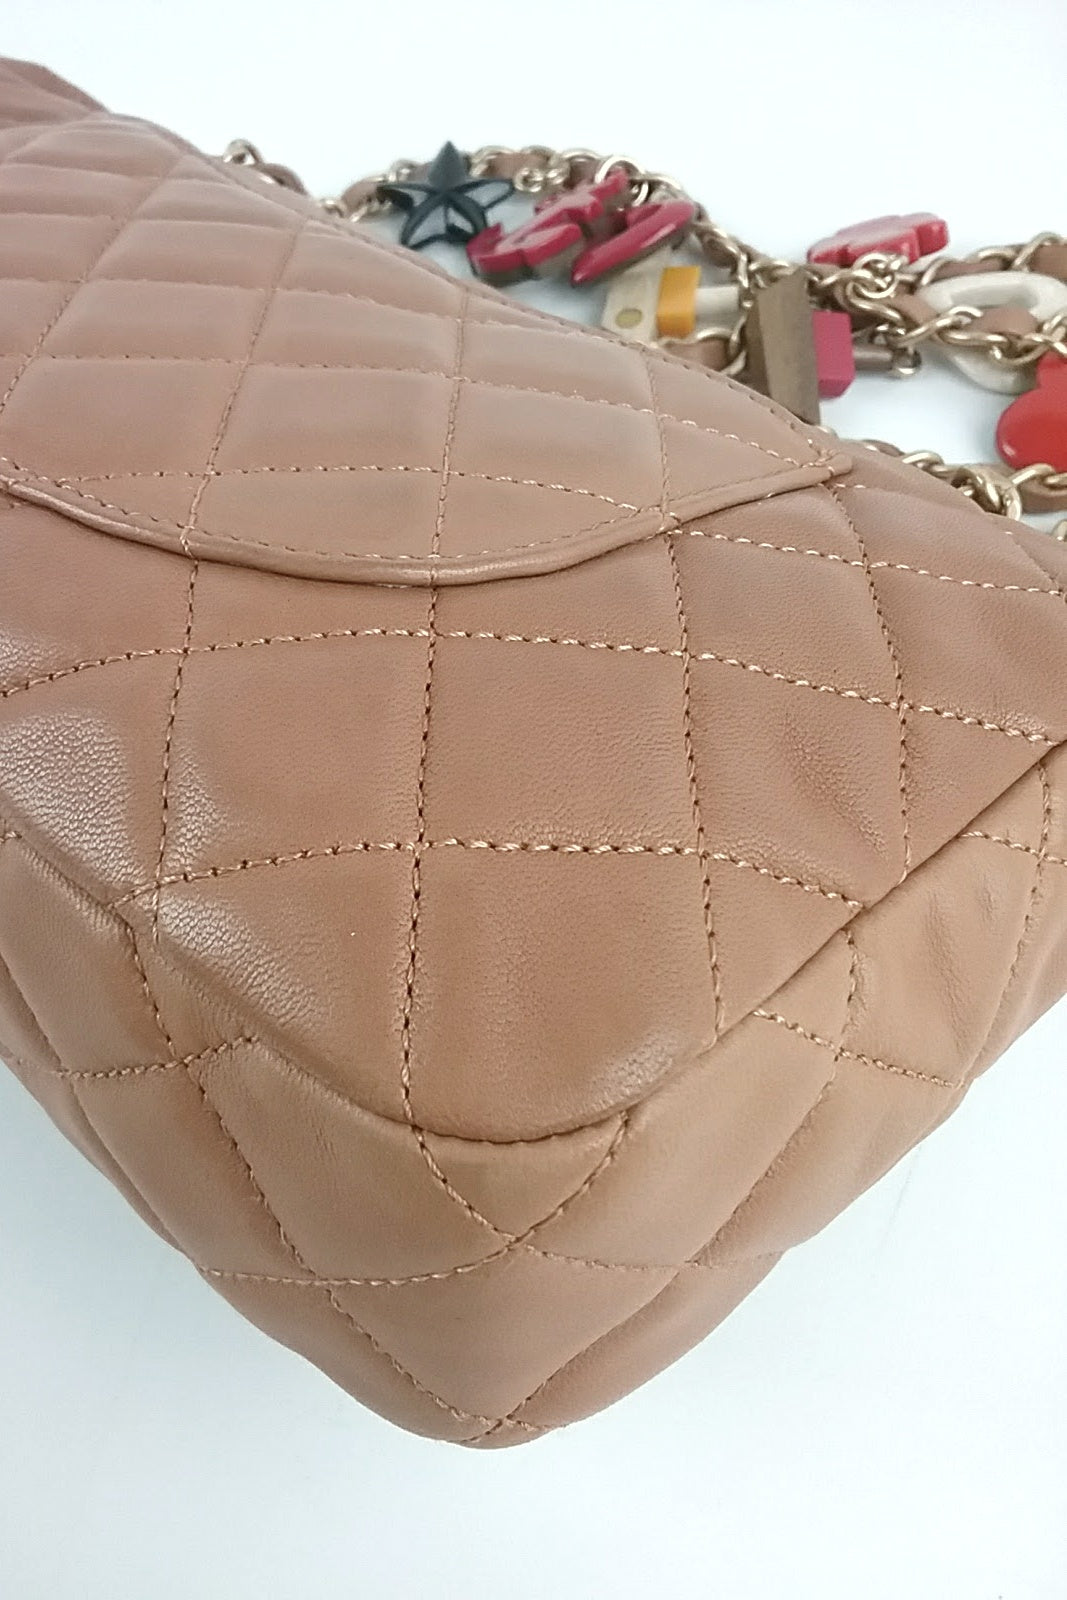 2011 Cruise Collection Tan Leather Medium Marine Charms Single Flap Bag GHW